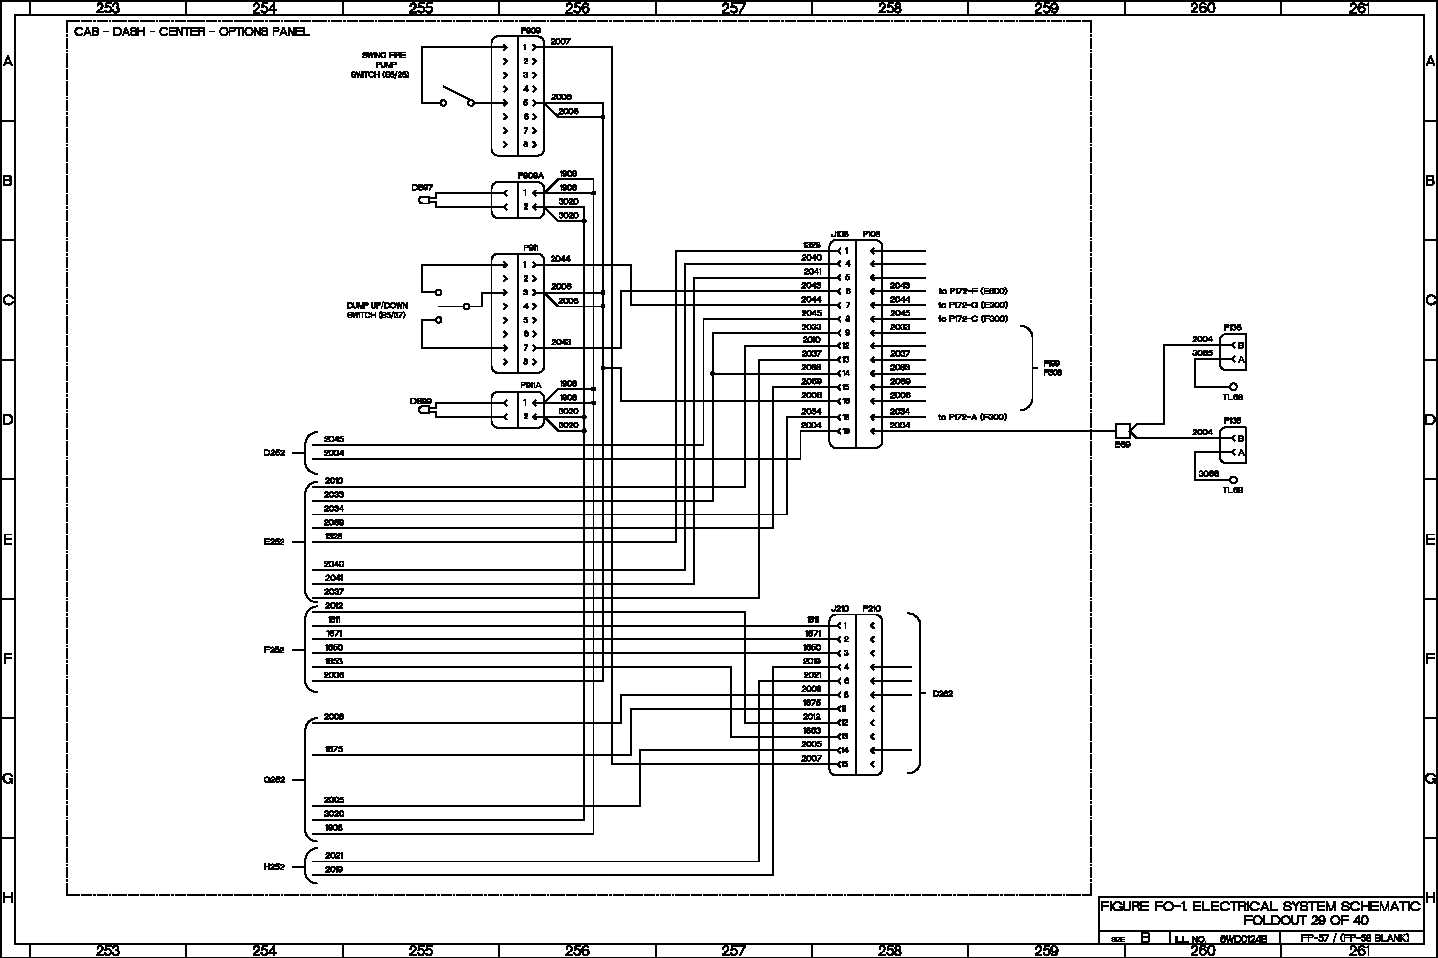 FIGURE FO-1 ELECTRICAL SYSTEM SCHEMATIC FOLDOUT 29 OF 40